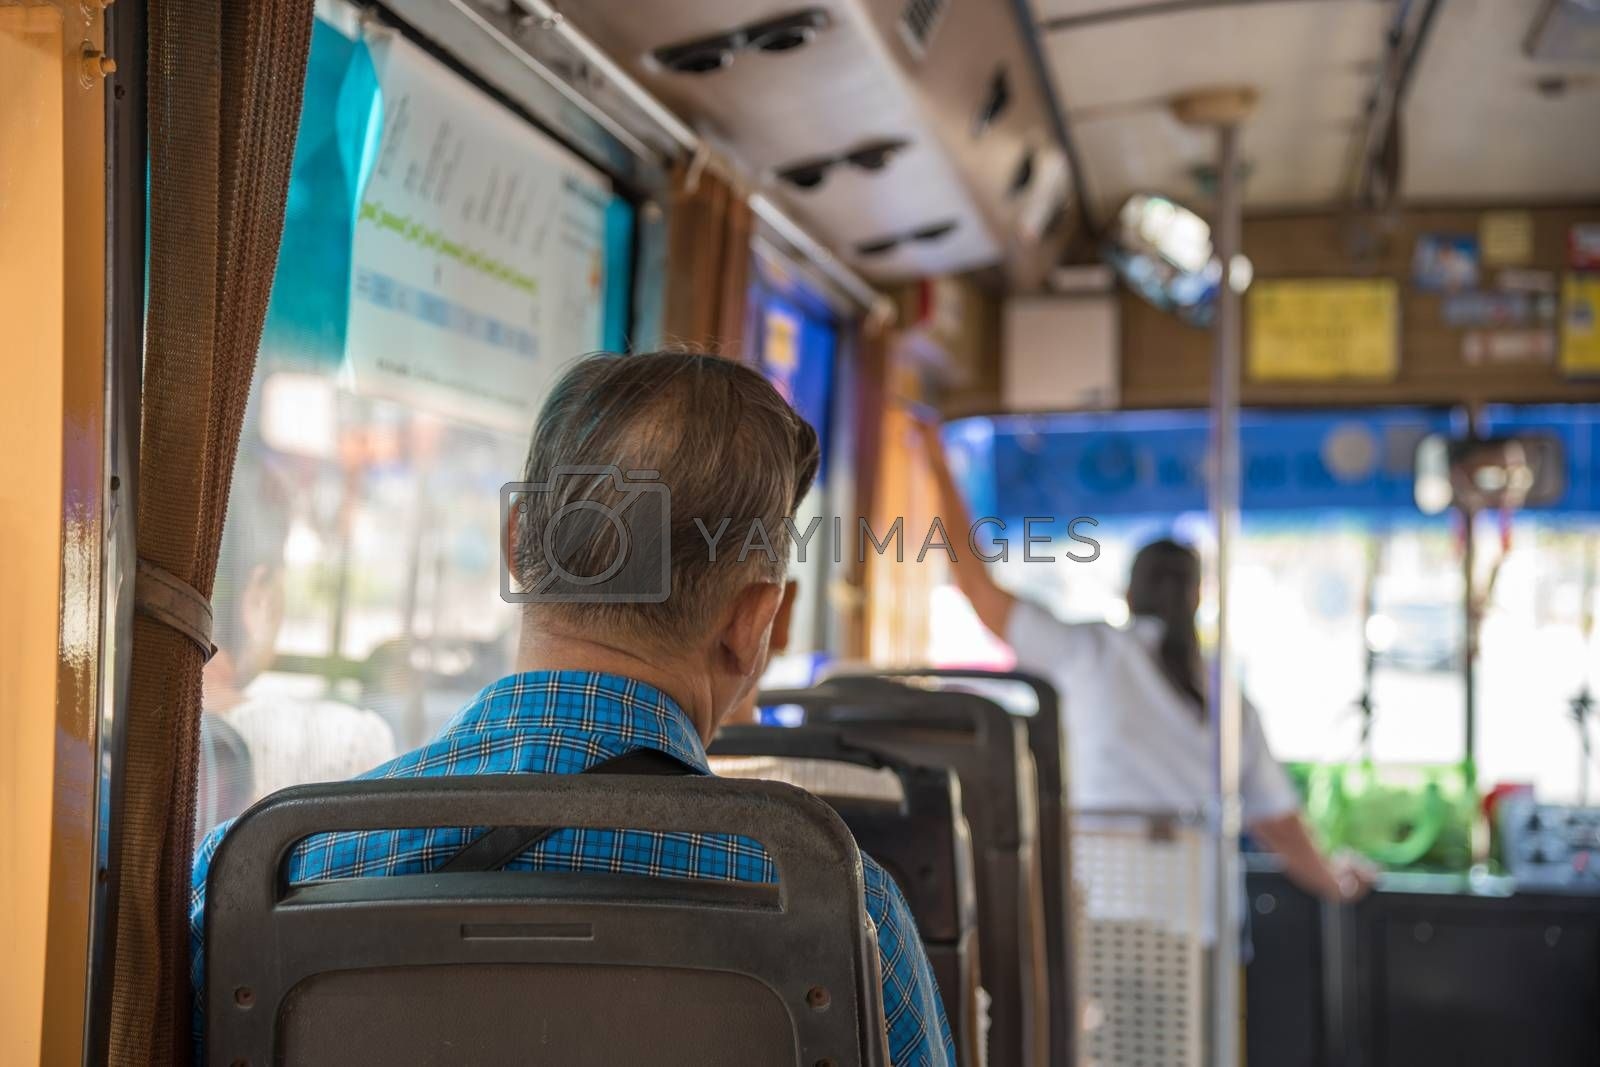 Bangkok, Thailand - March 25, 2017 : Unidentified people travel by bus in Bangkok. Buses are one of the most important public transport system in Bangkok.